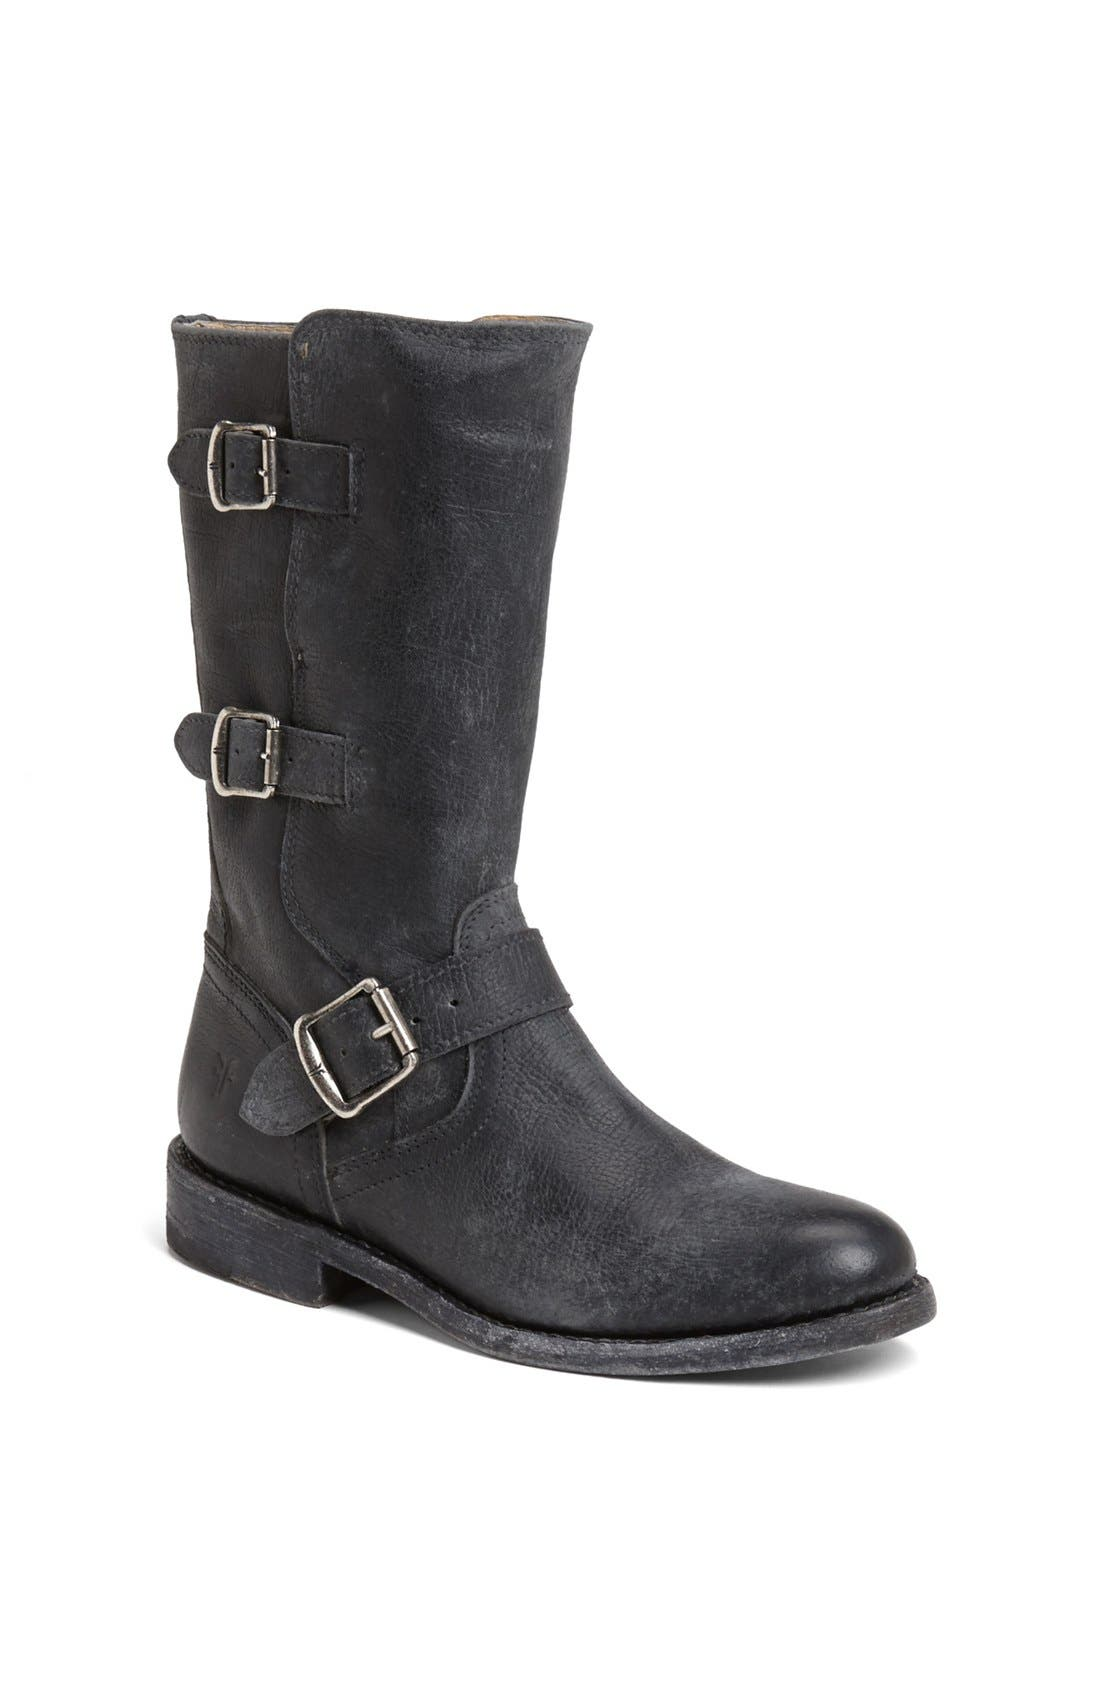 Alternate Image 1 Selected - Frye 'Jayden' Leather Moto Boot